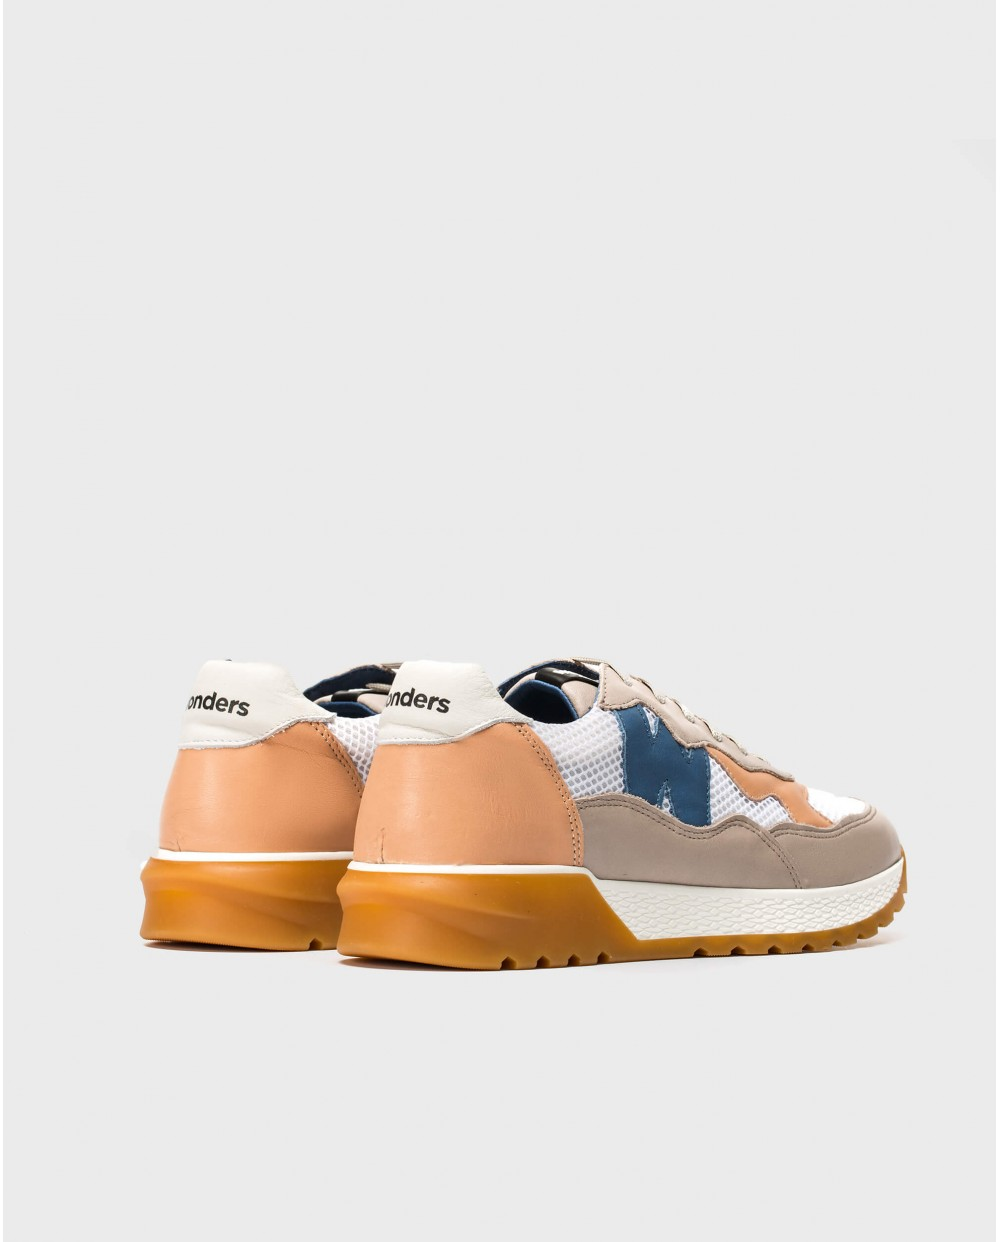 Wonders-Sneakers-Sneakers with shoelace closure